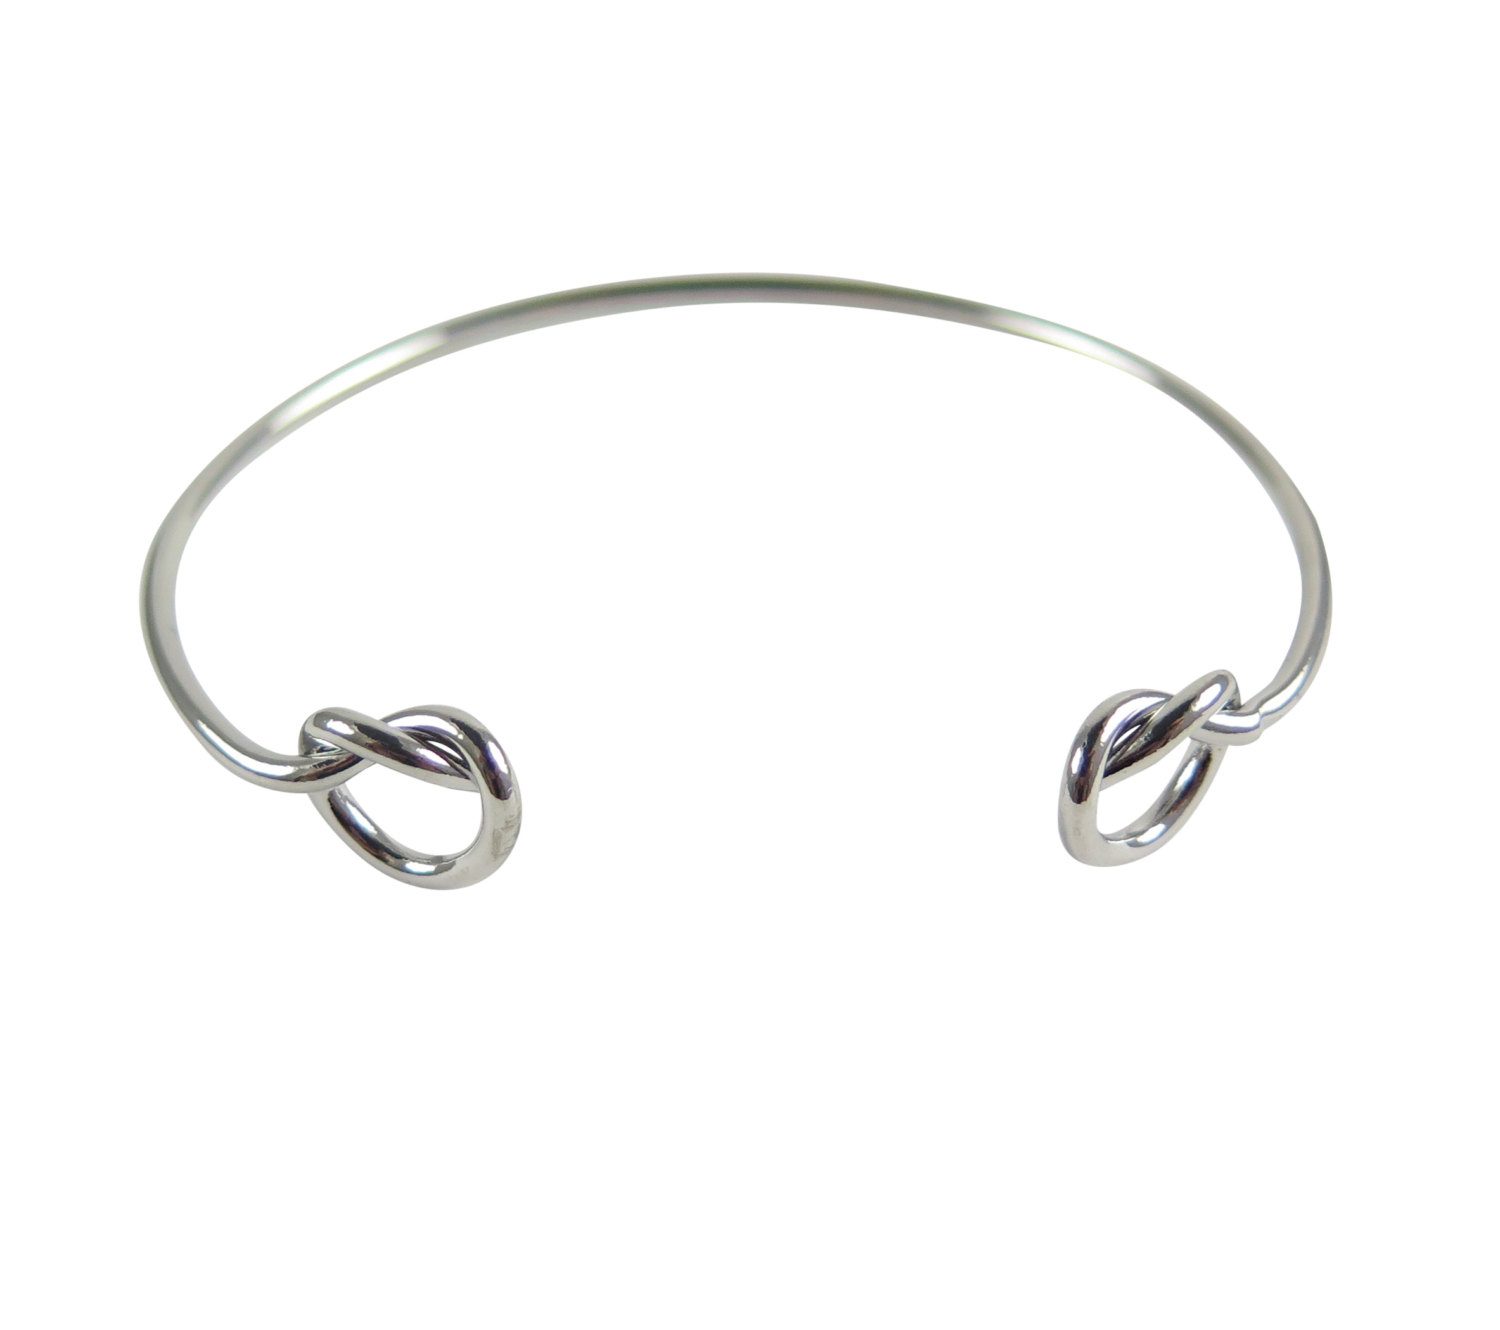 Wire Double Knot Adjustable Bangle Bracelet